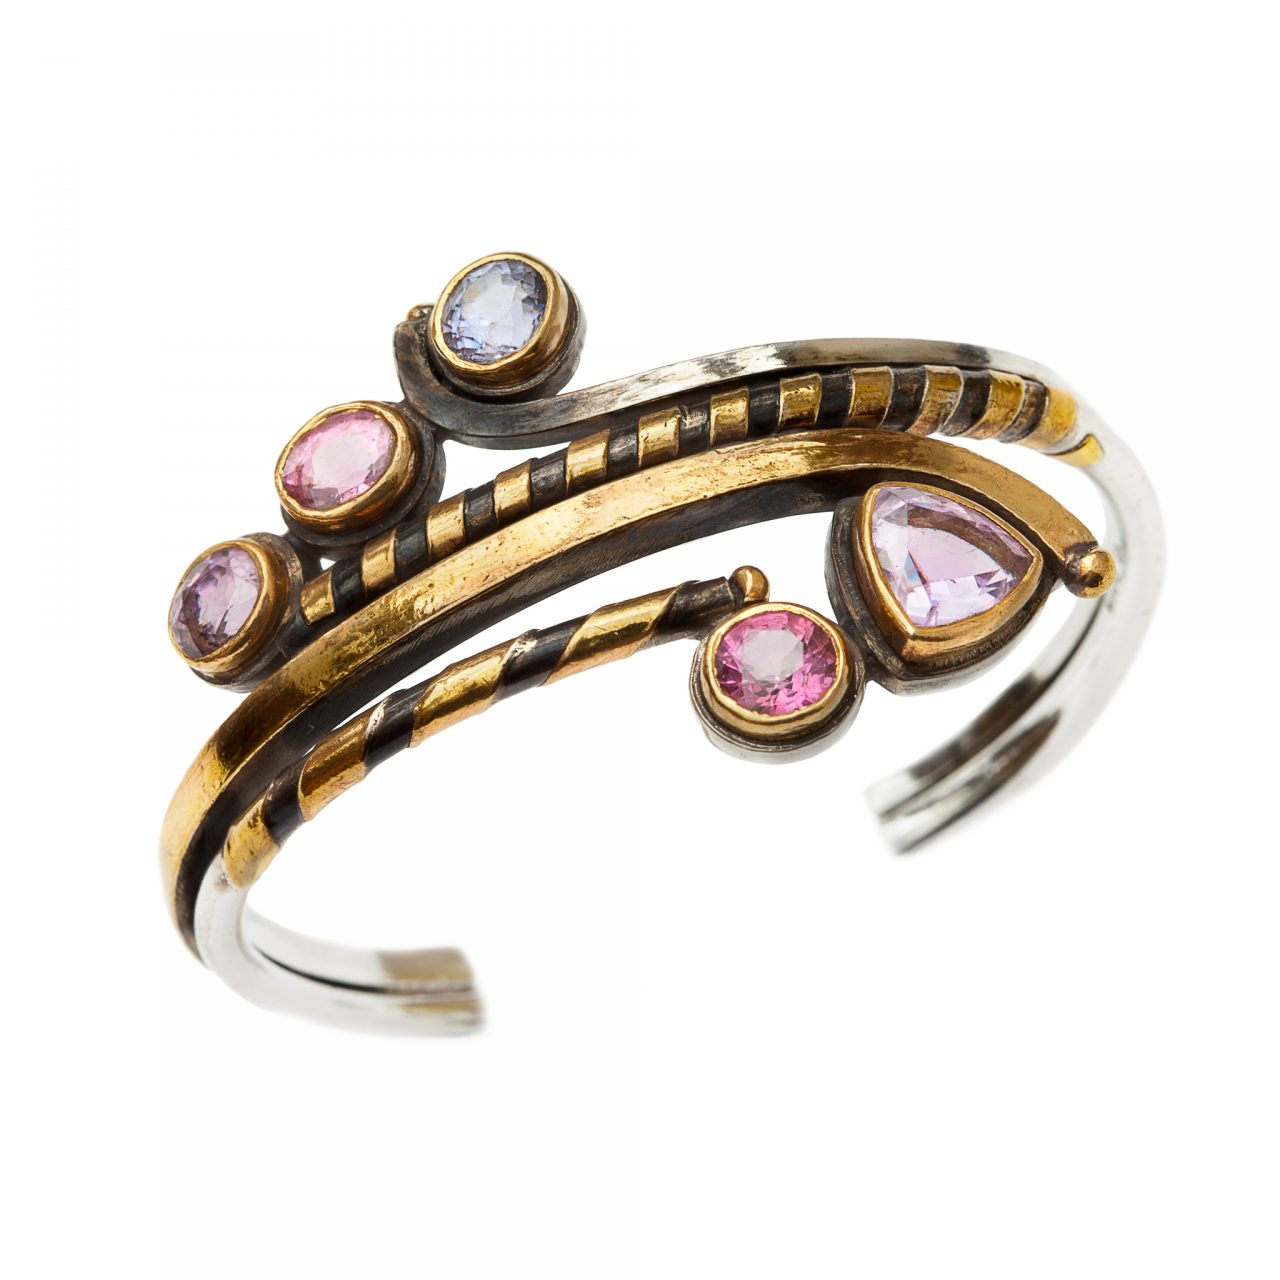 Bracelet with Spinels